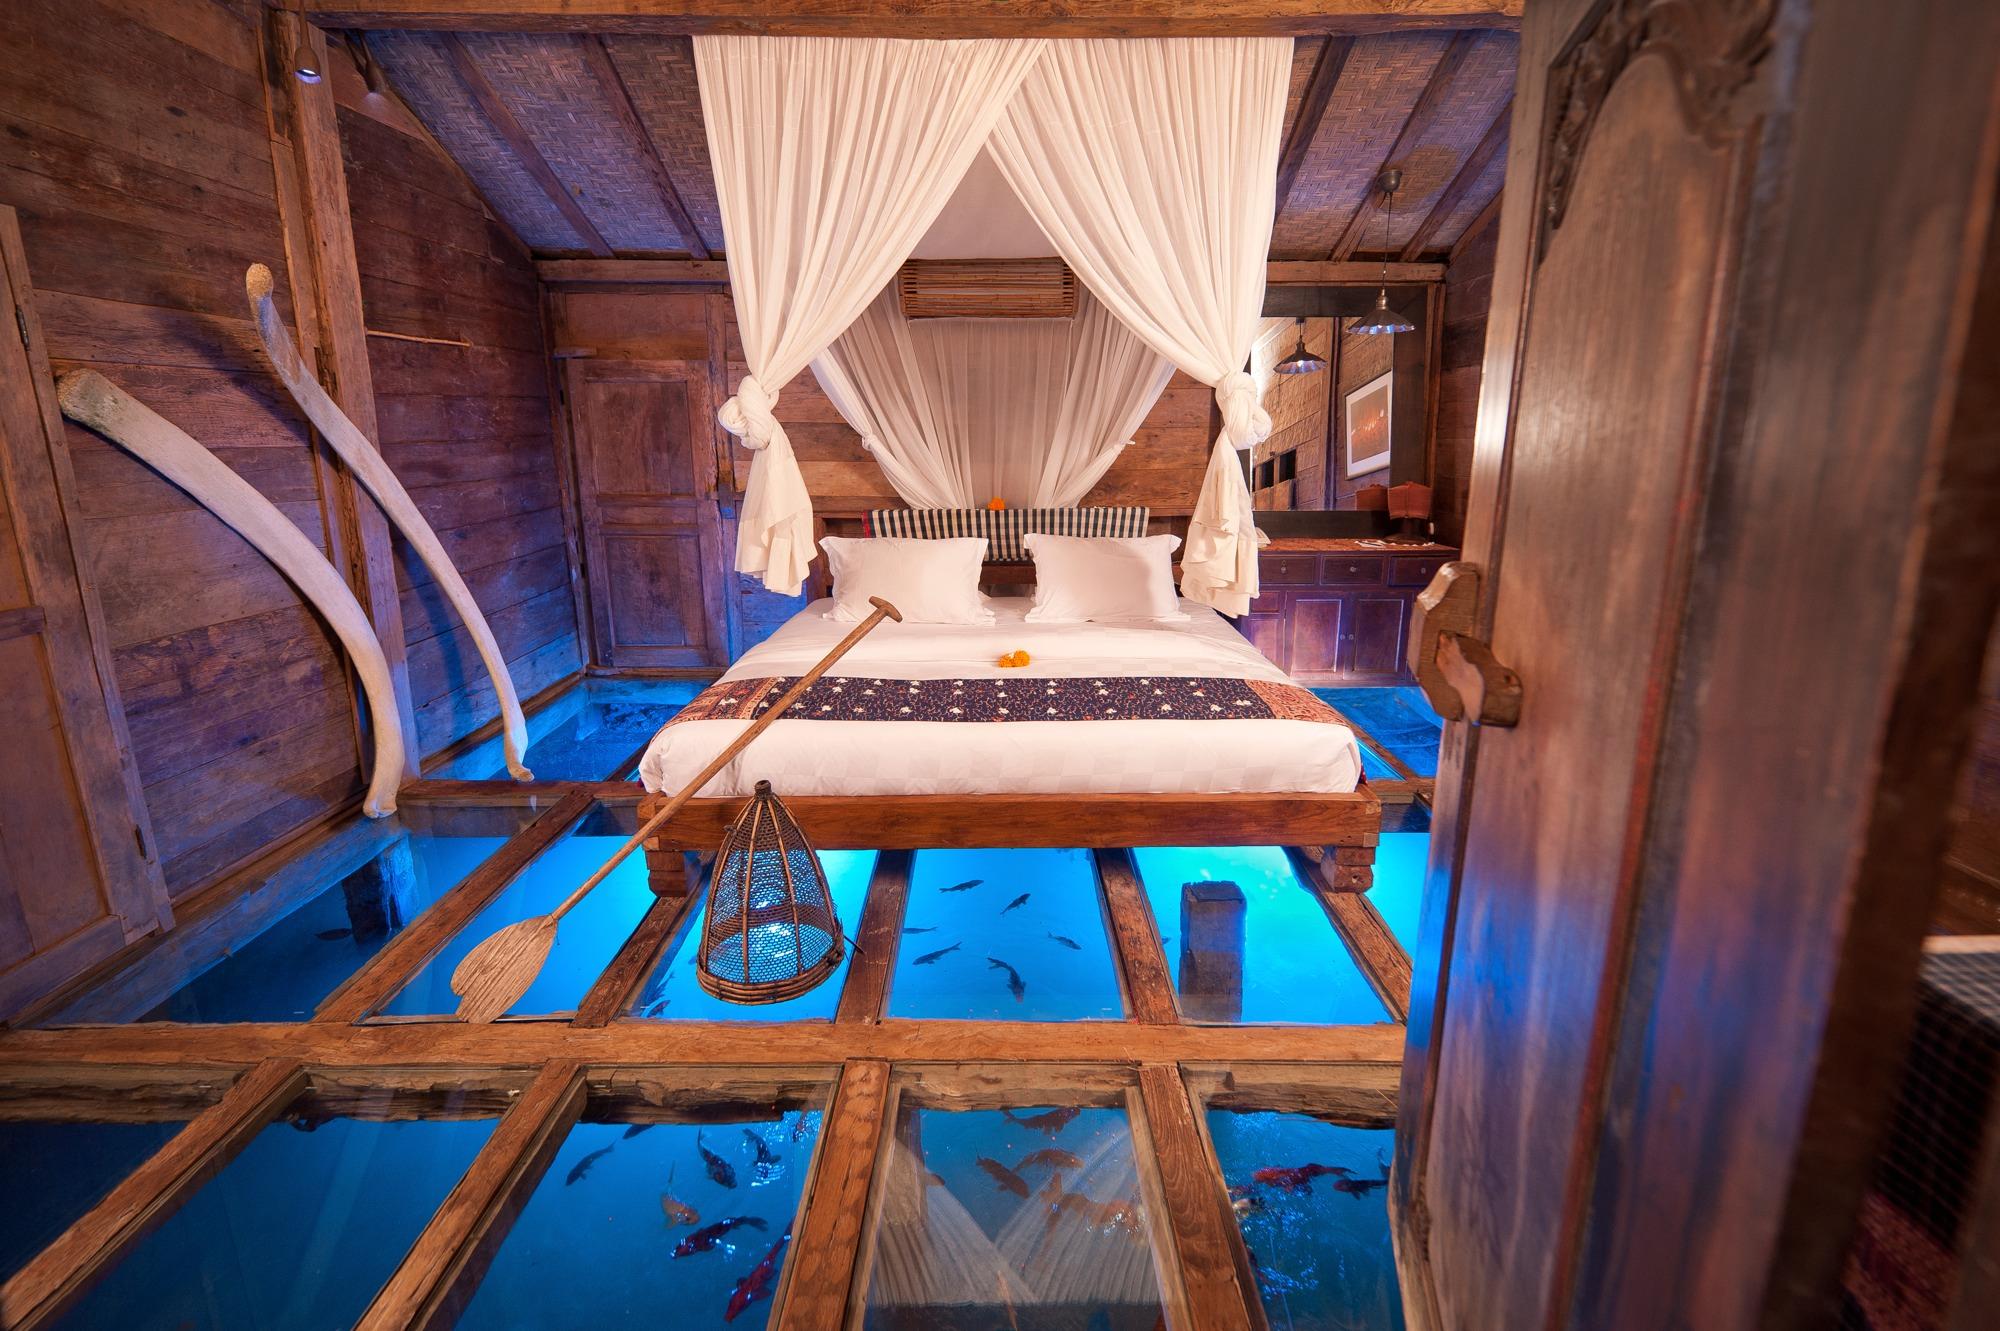 Glass Floor Aquarium Bedroom Interior Design Ideas